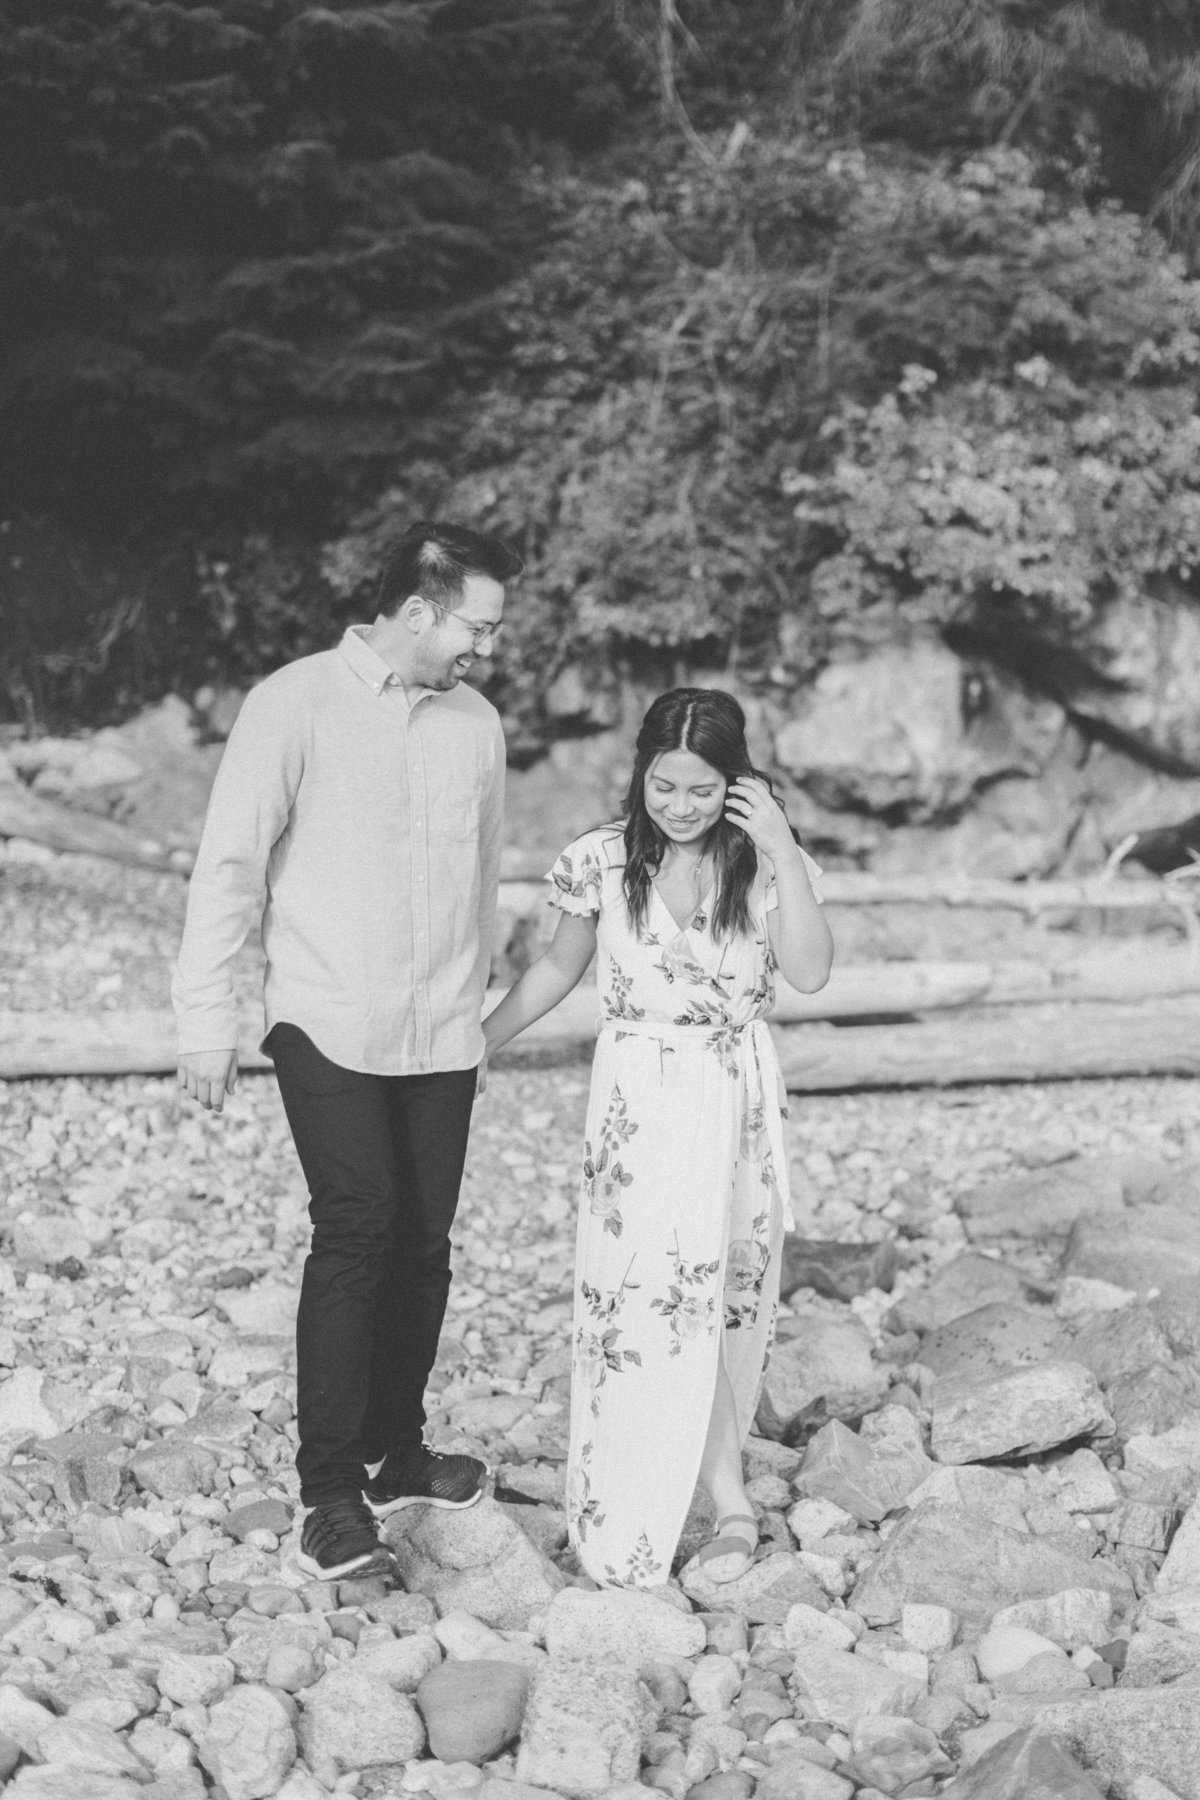 whytecliff-park-engagement-vancouver-blush-sky-photography-3